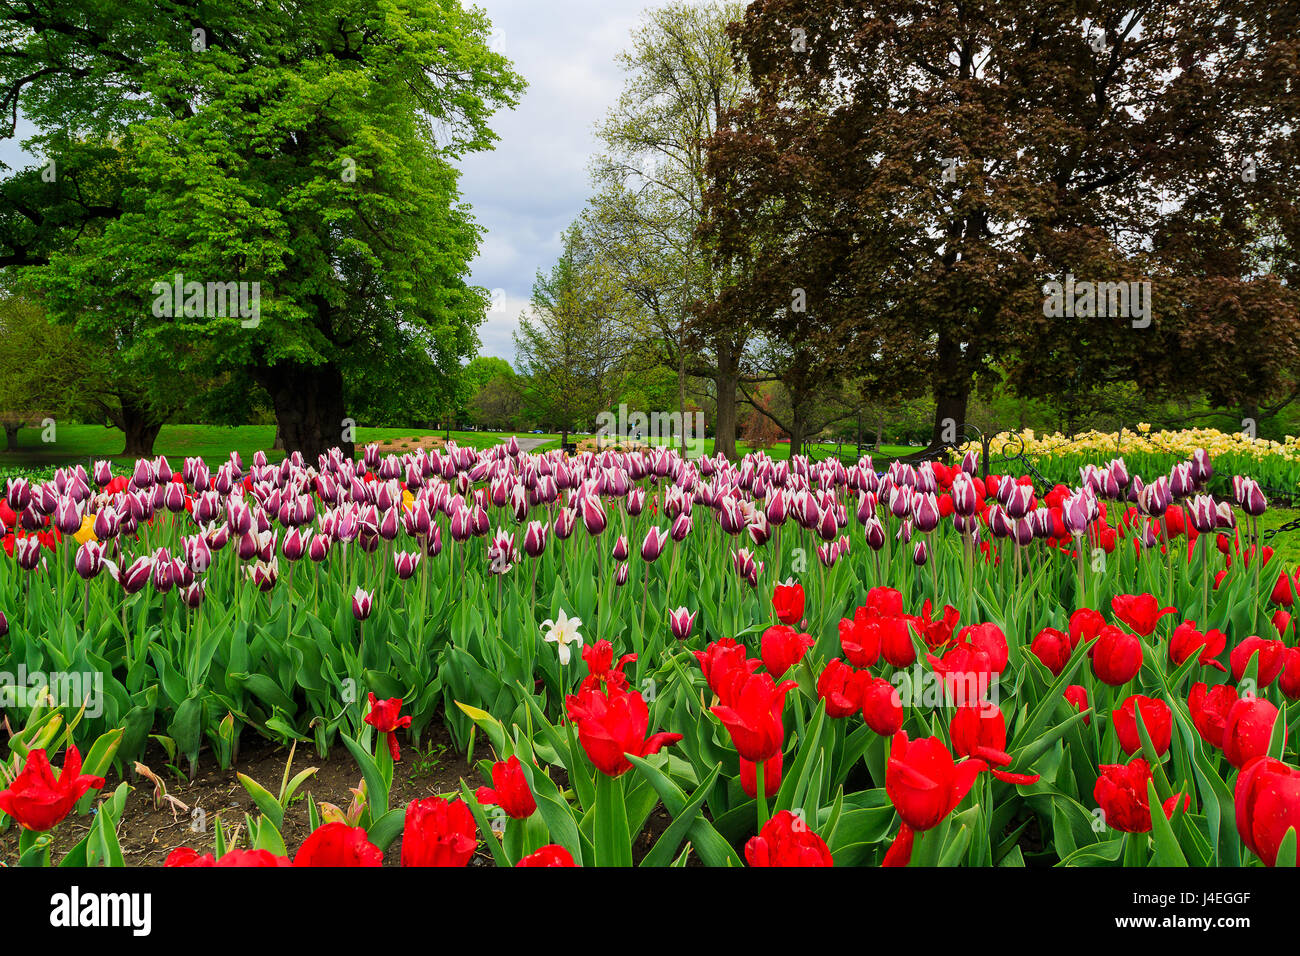 Springtime In Albany NY At Washington Park. Tulips Of Read, Orange, Yellow,  White, Pink, Purple On Display With Blue Bells